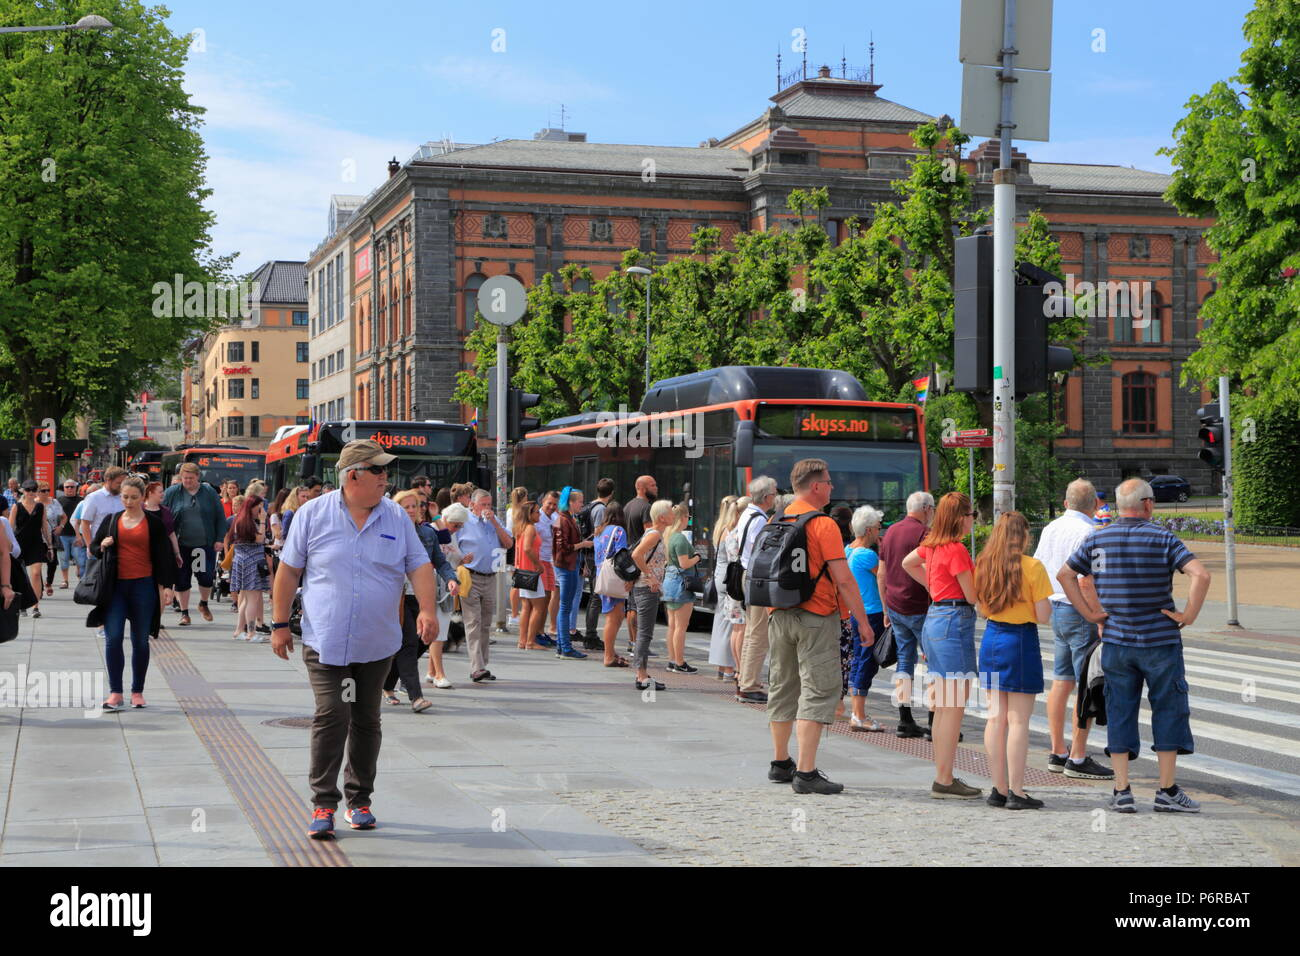 Christies gate (street) in Bergen city centre, Norway - Stock Image